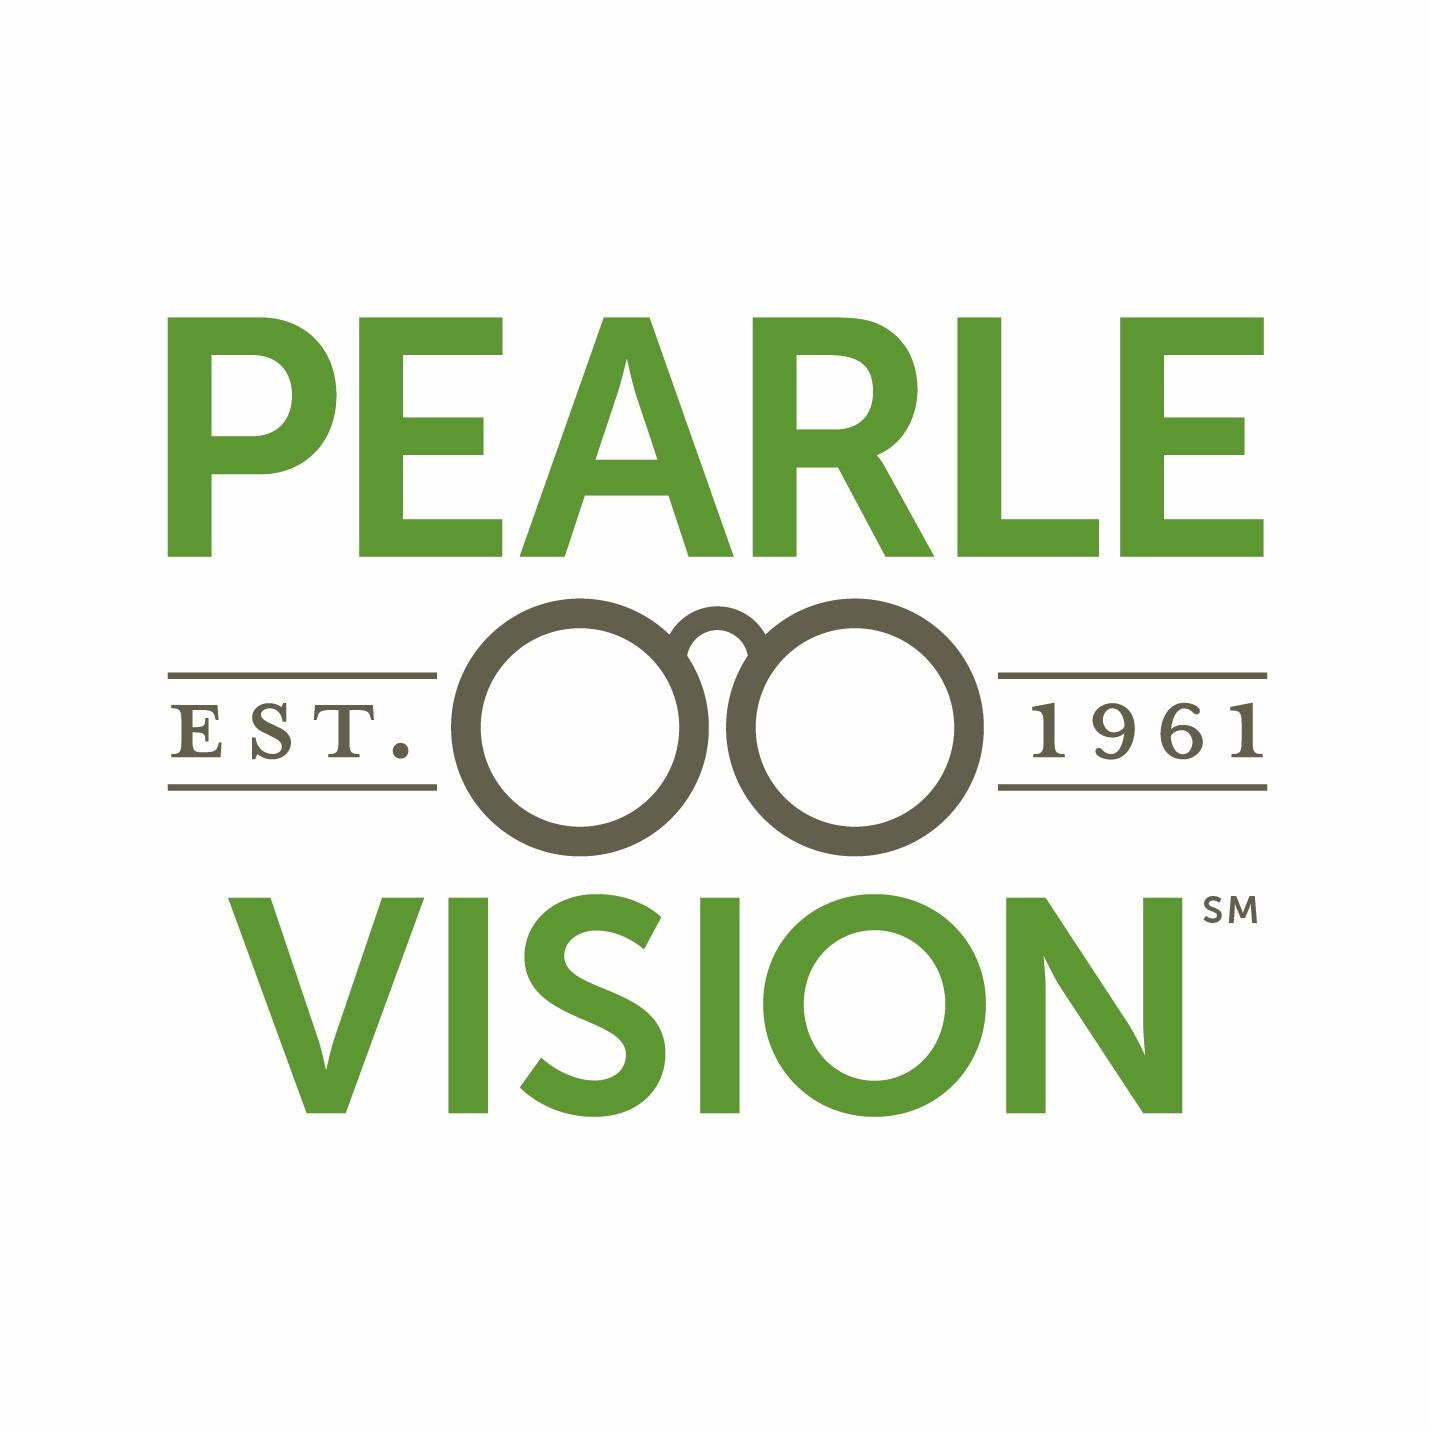 Pearle Vision in Scarborough,